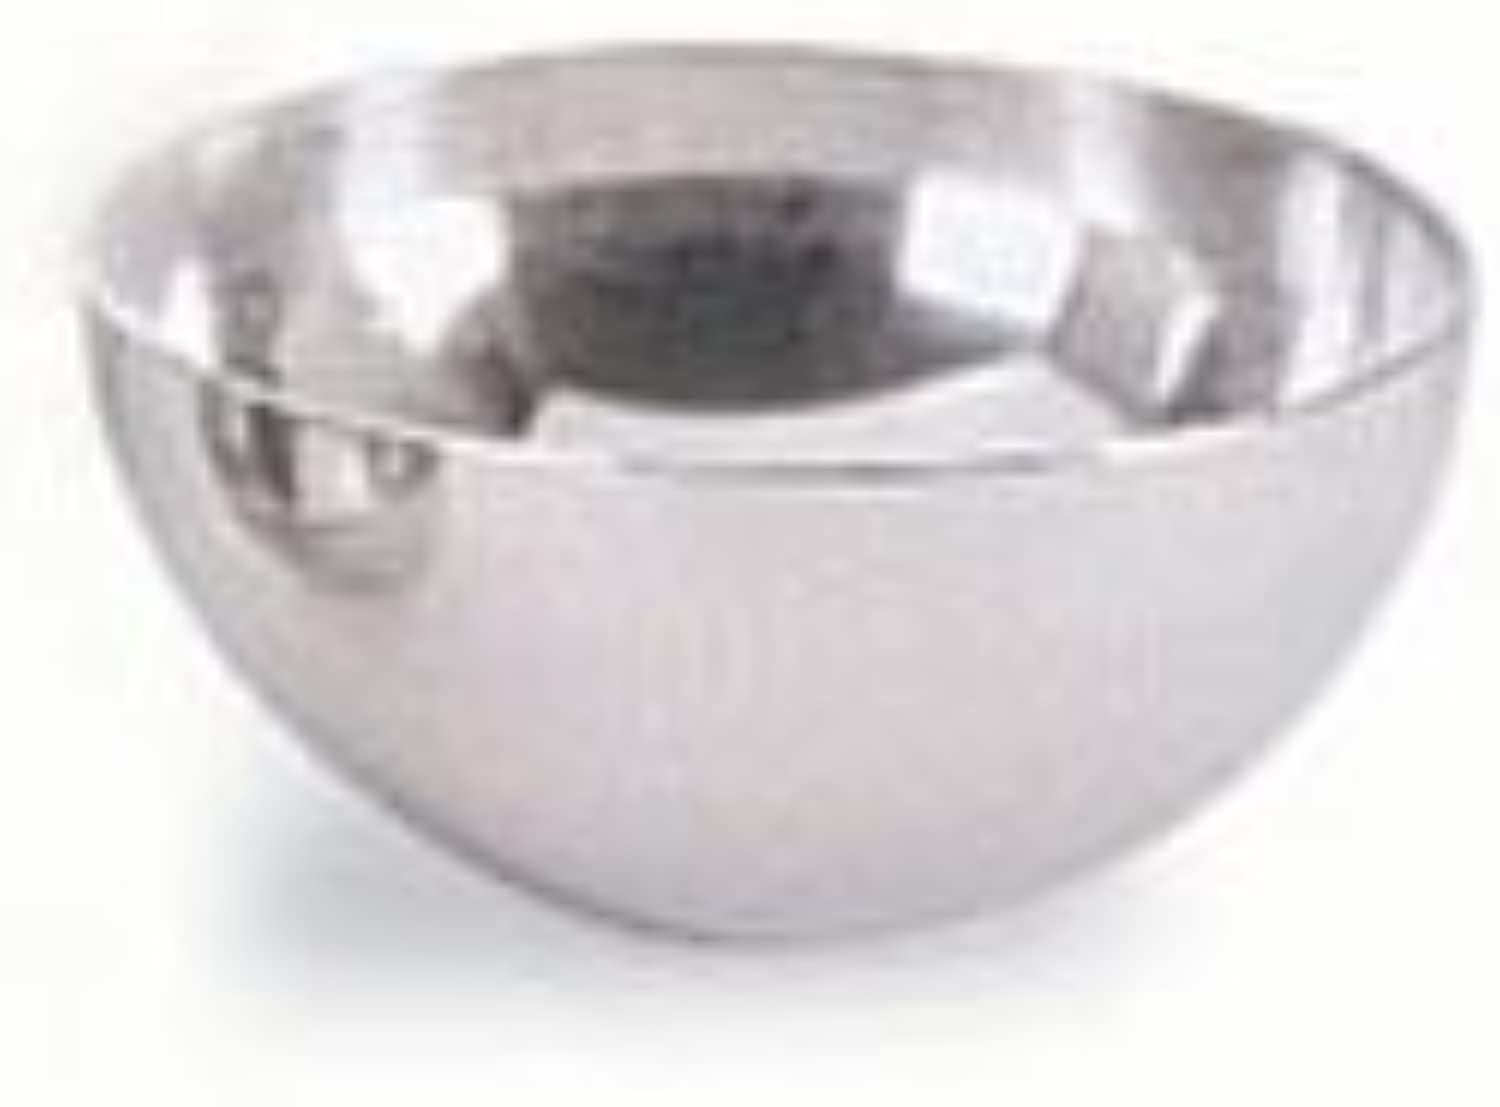 descuentos y mas Hemisphere Hemisphere Hemisphere Mold Half Round Stainless Steel - 2-3 4 x 1-3 8 High by De Buyer  ventas al por mayor